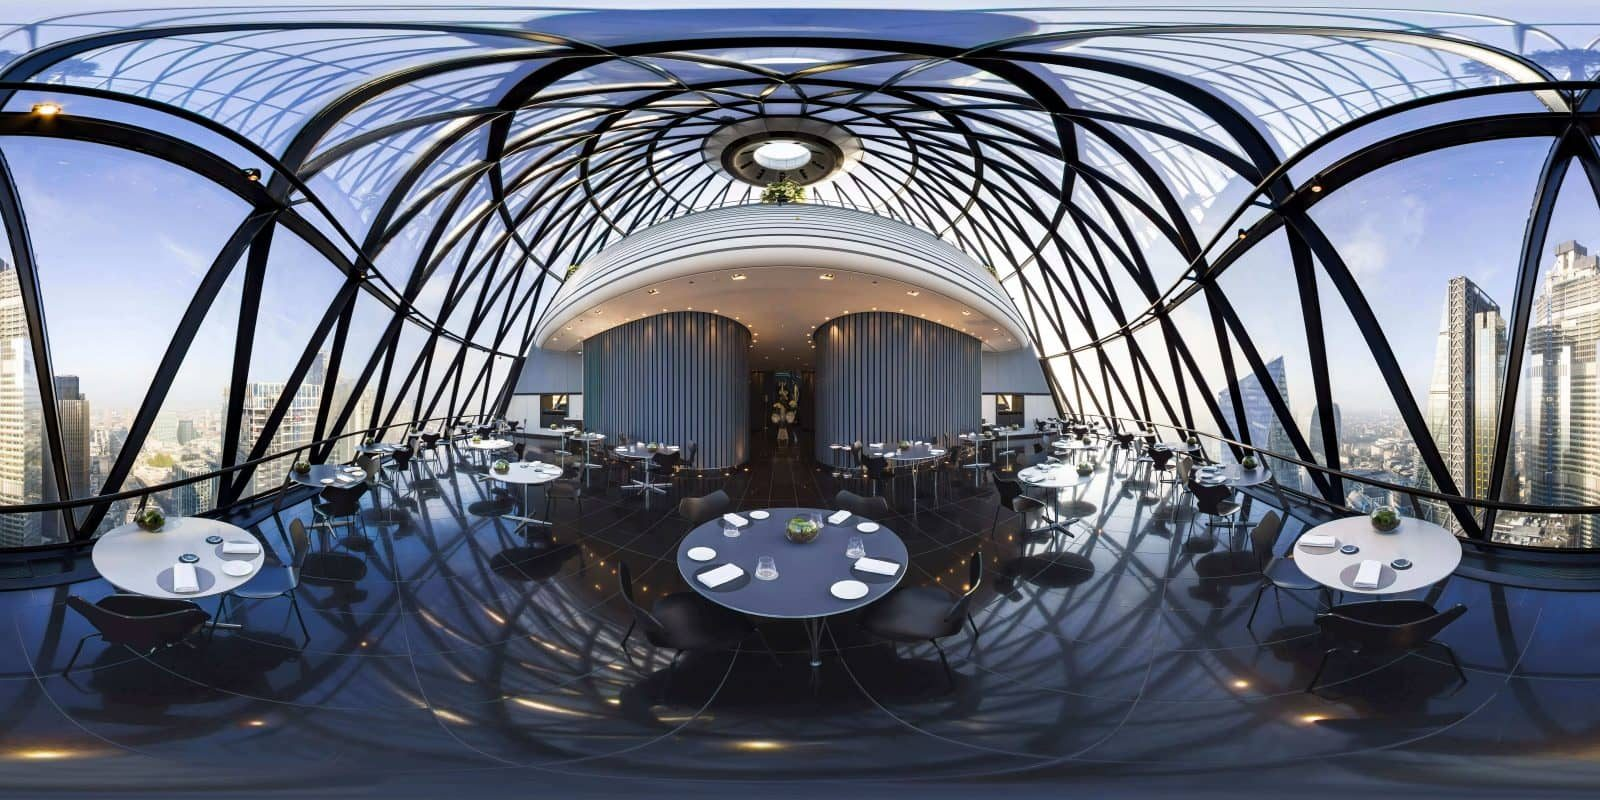 London Restaurant Festival - Searcys at the Gherkin